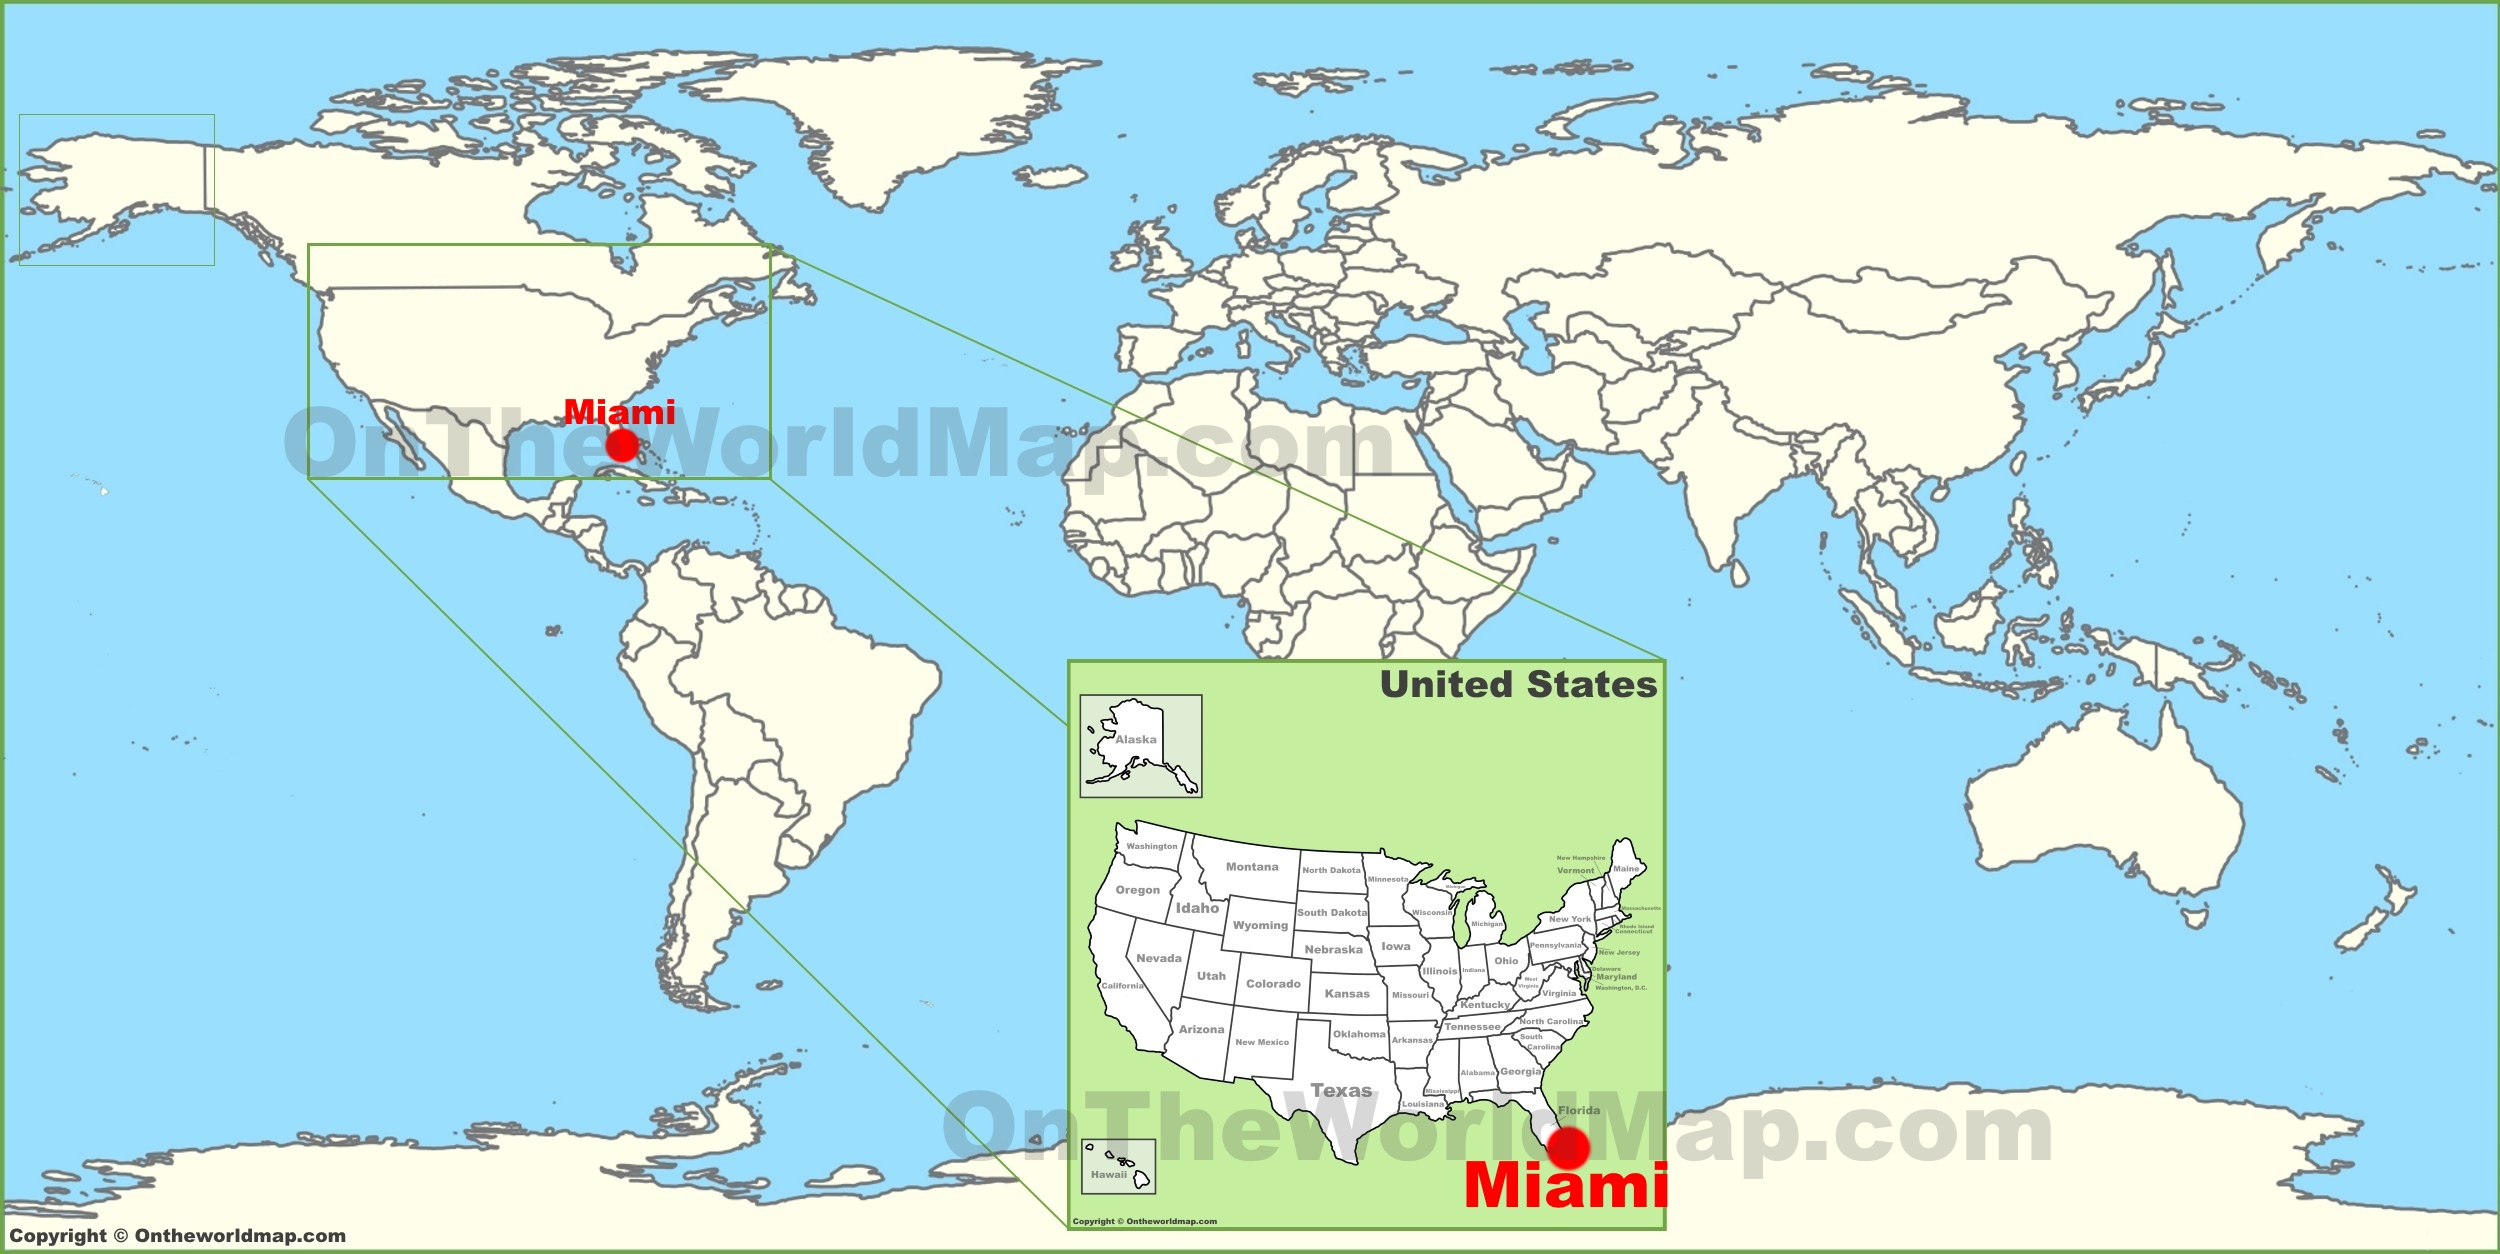 Miami On The World Map - The Map Of Miami Florida